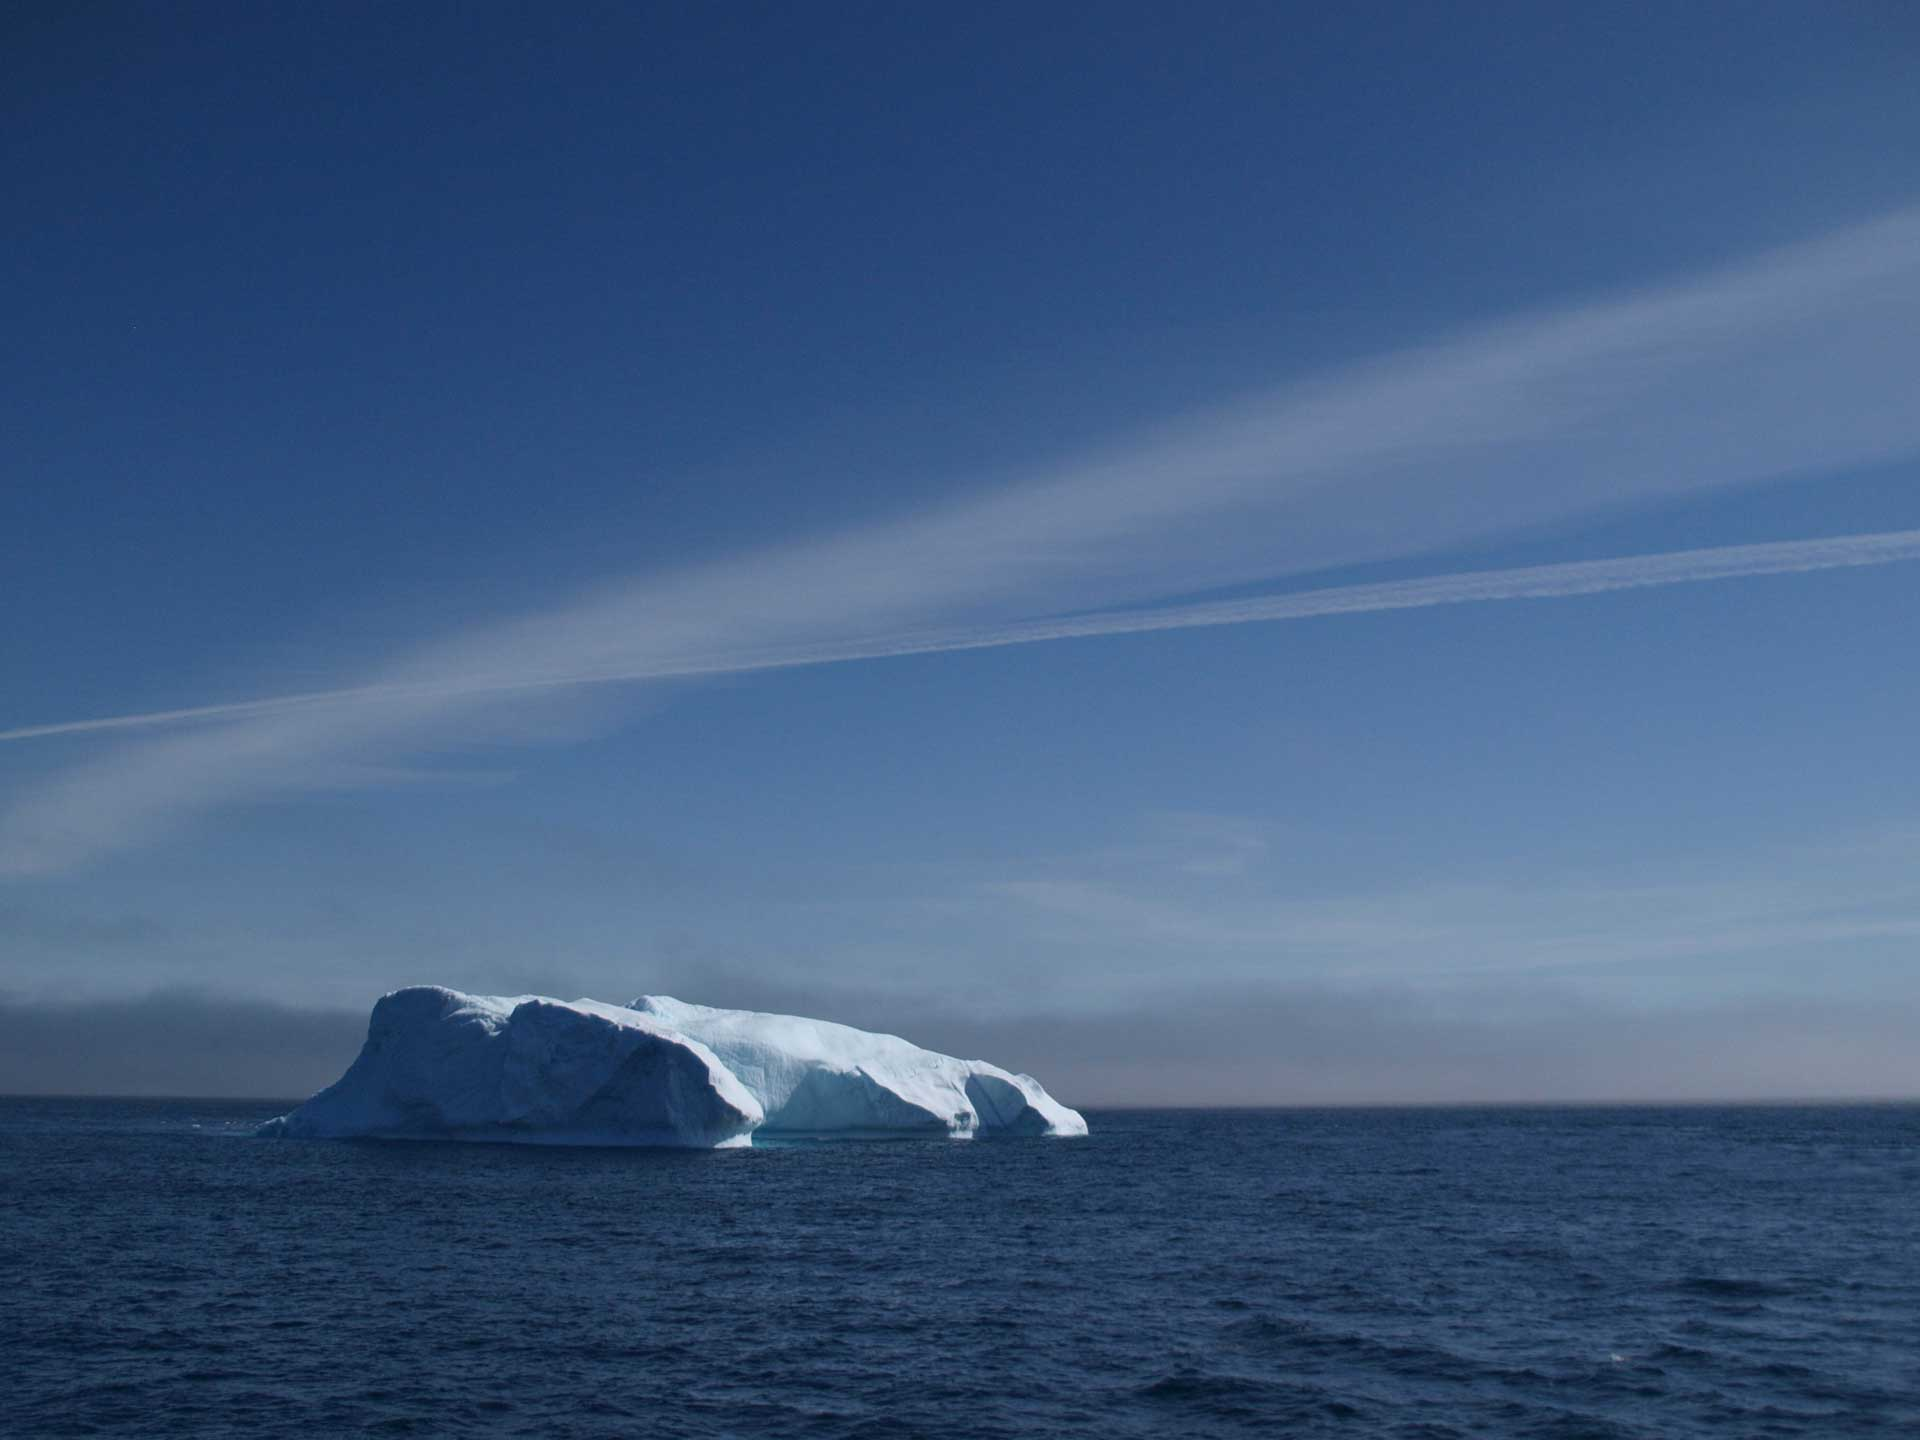 Expanding marine protected areas in the Polar Regions